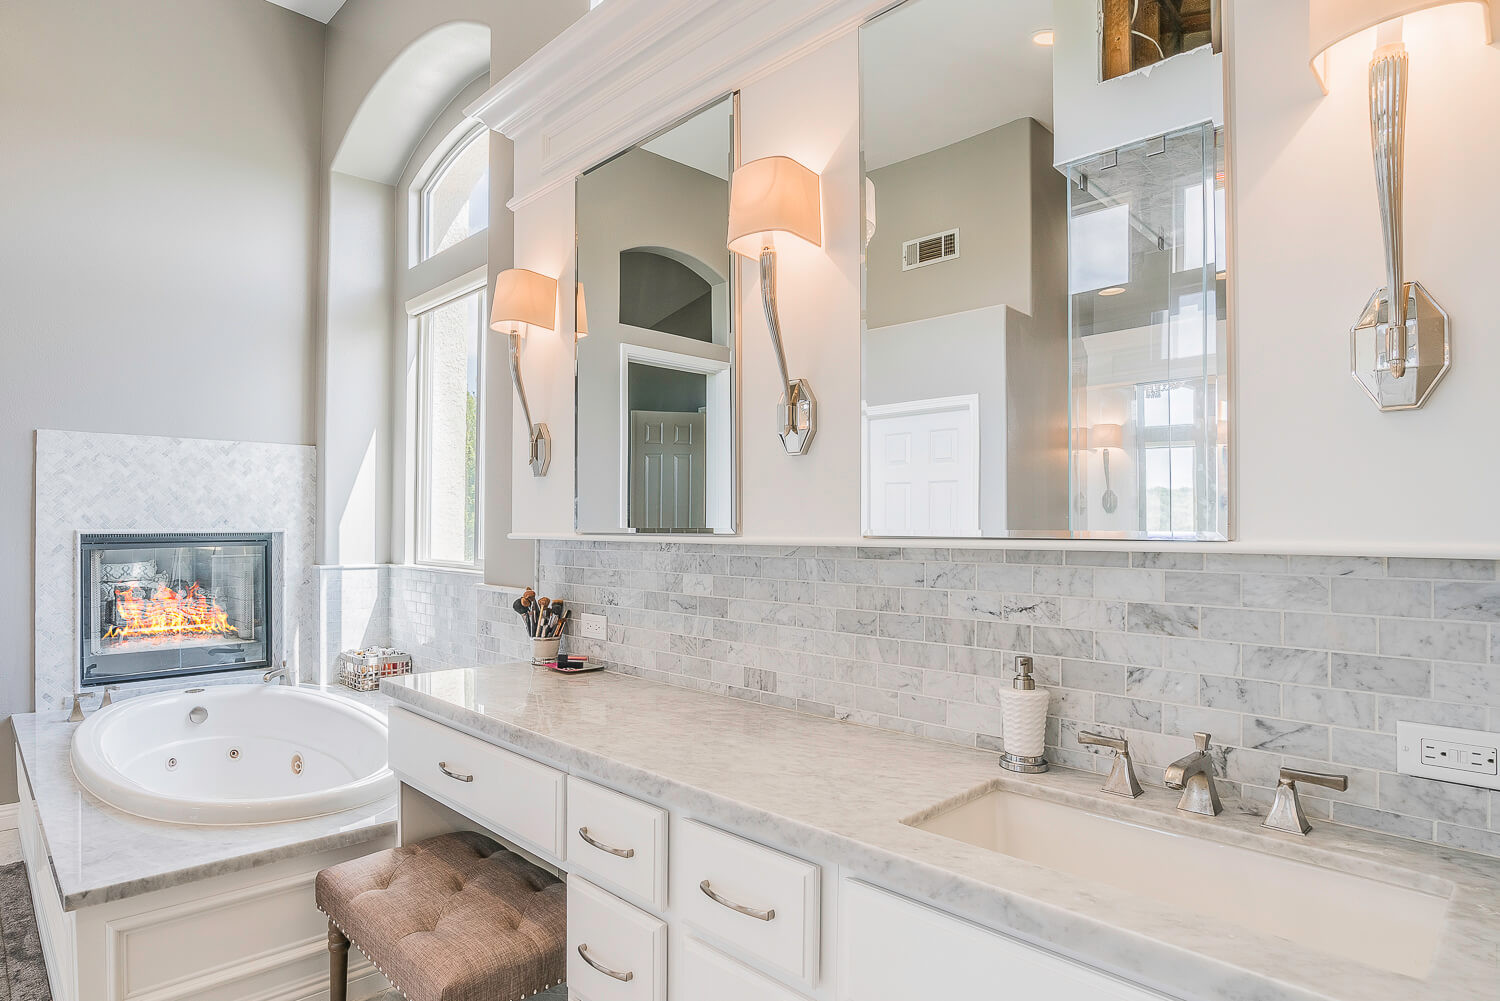 Marble Bathroom Remodel with Fireplace &